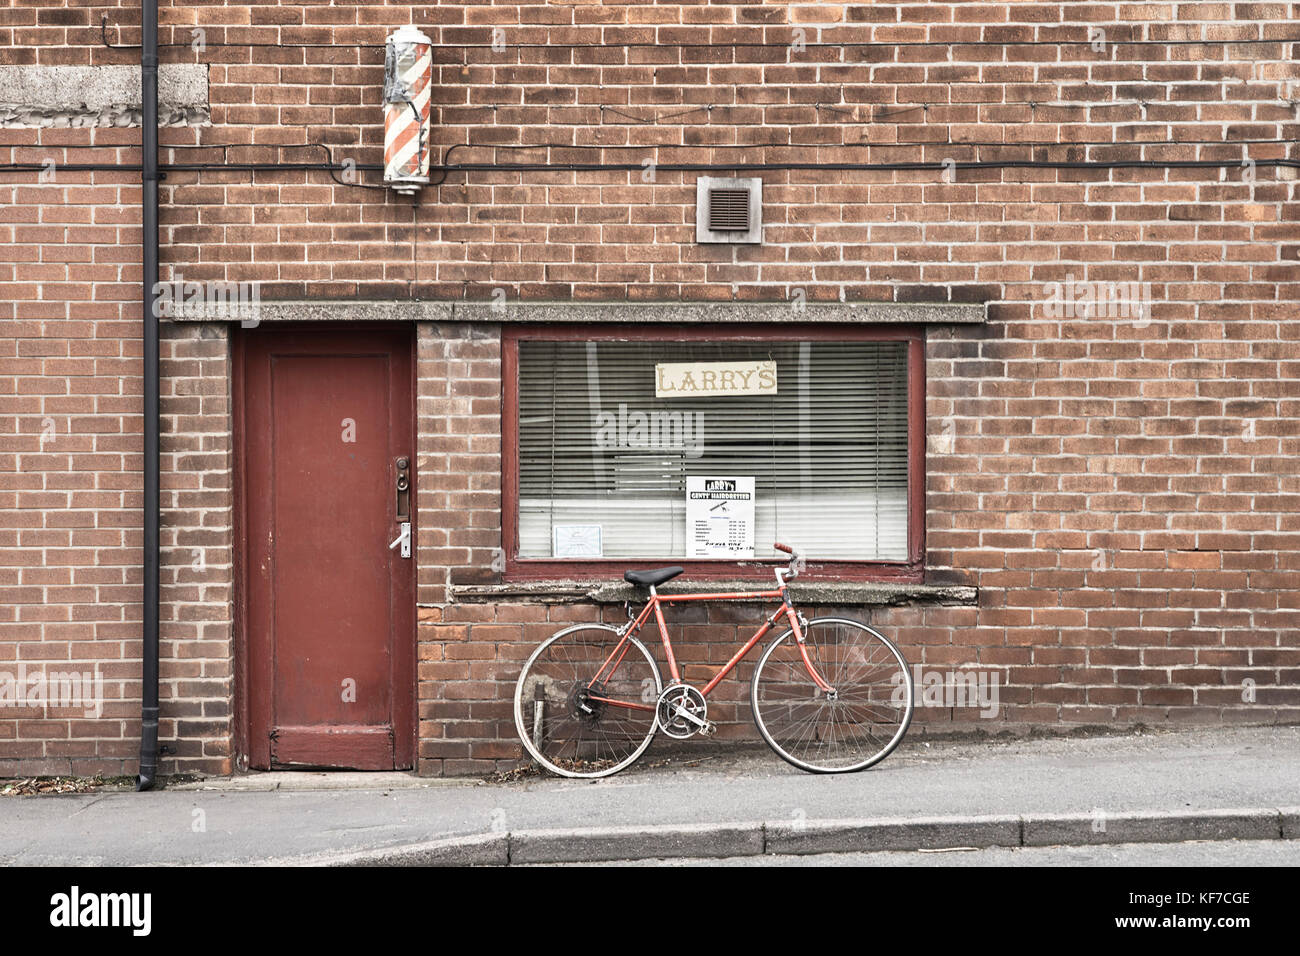 Larry's gents hairdressers at Middlewich - Stock Image